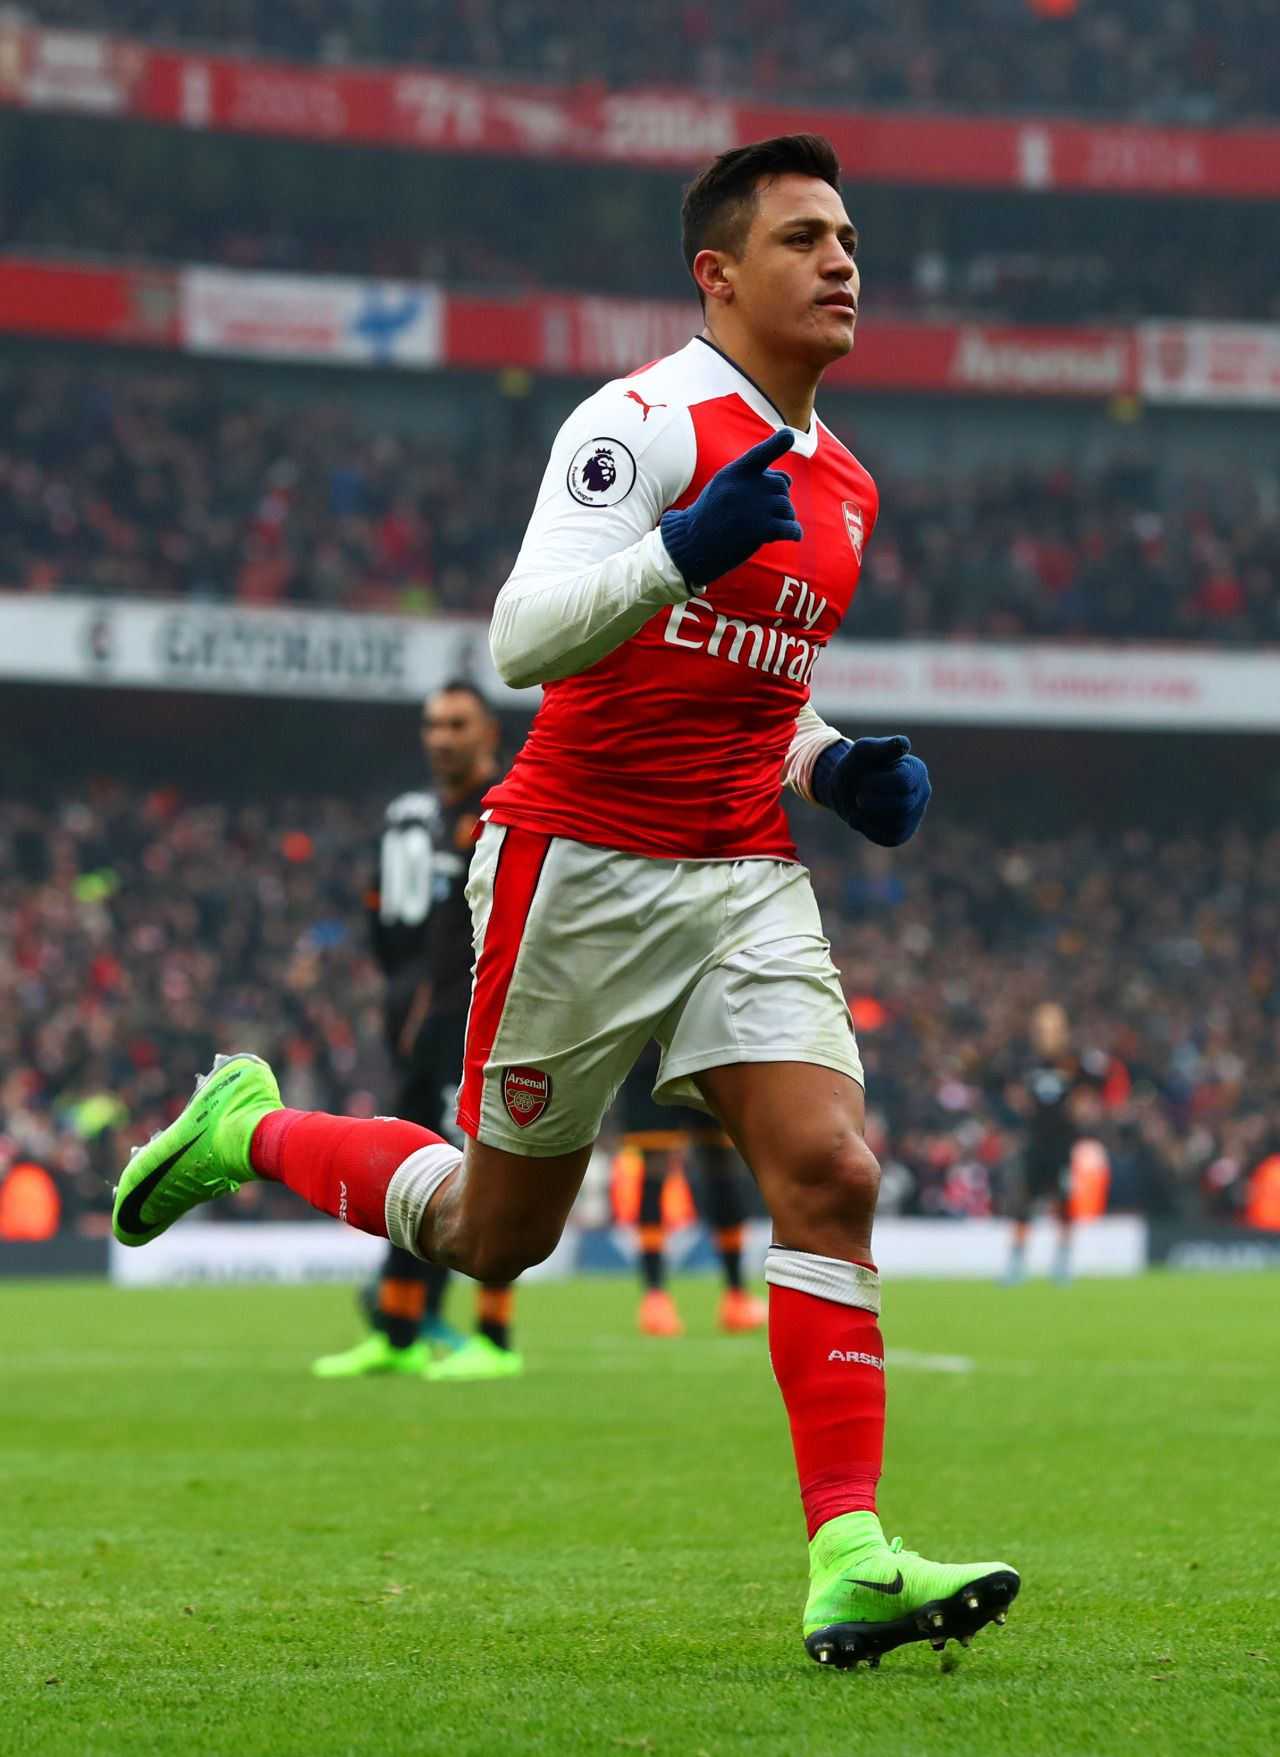 TheArsenal AlexisSanchez Arsenal 9ine Hull city